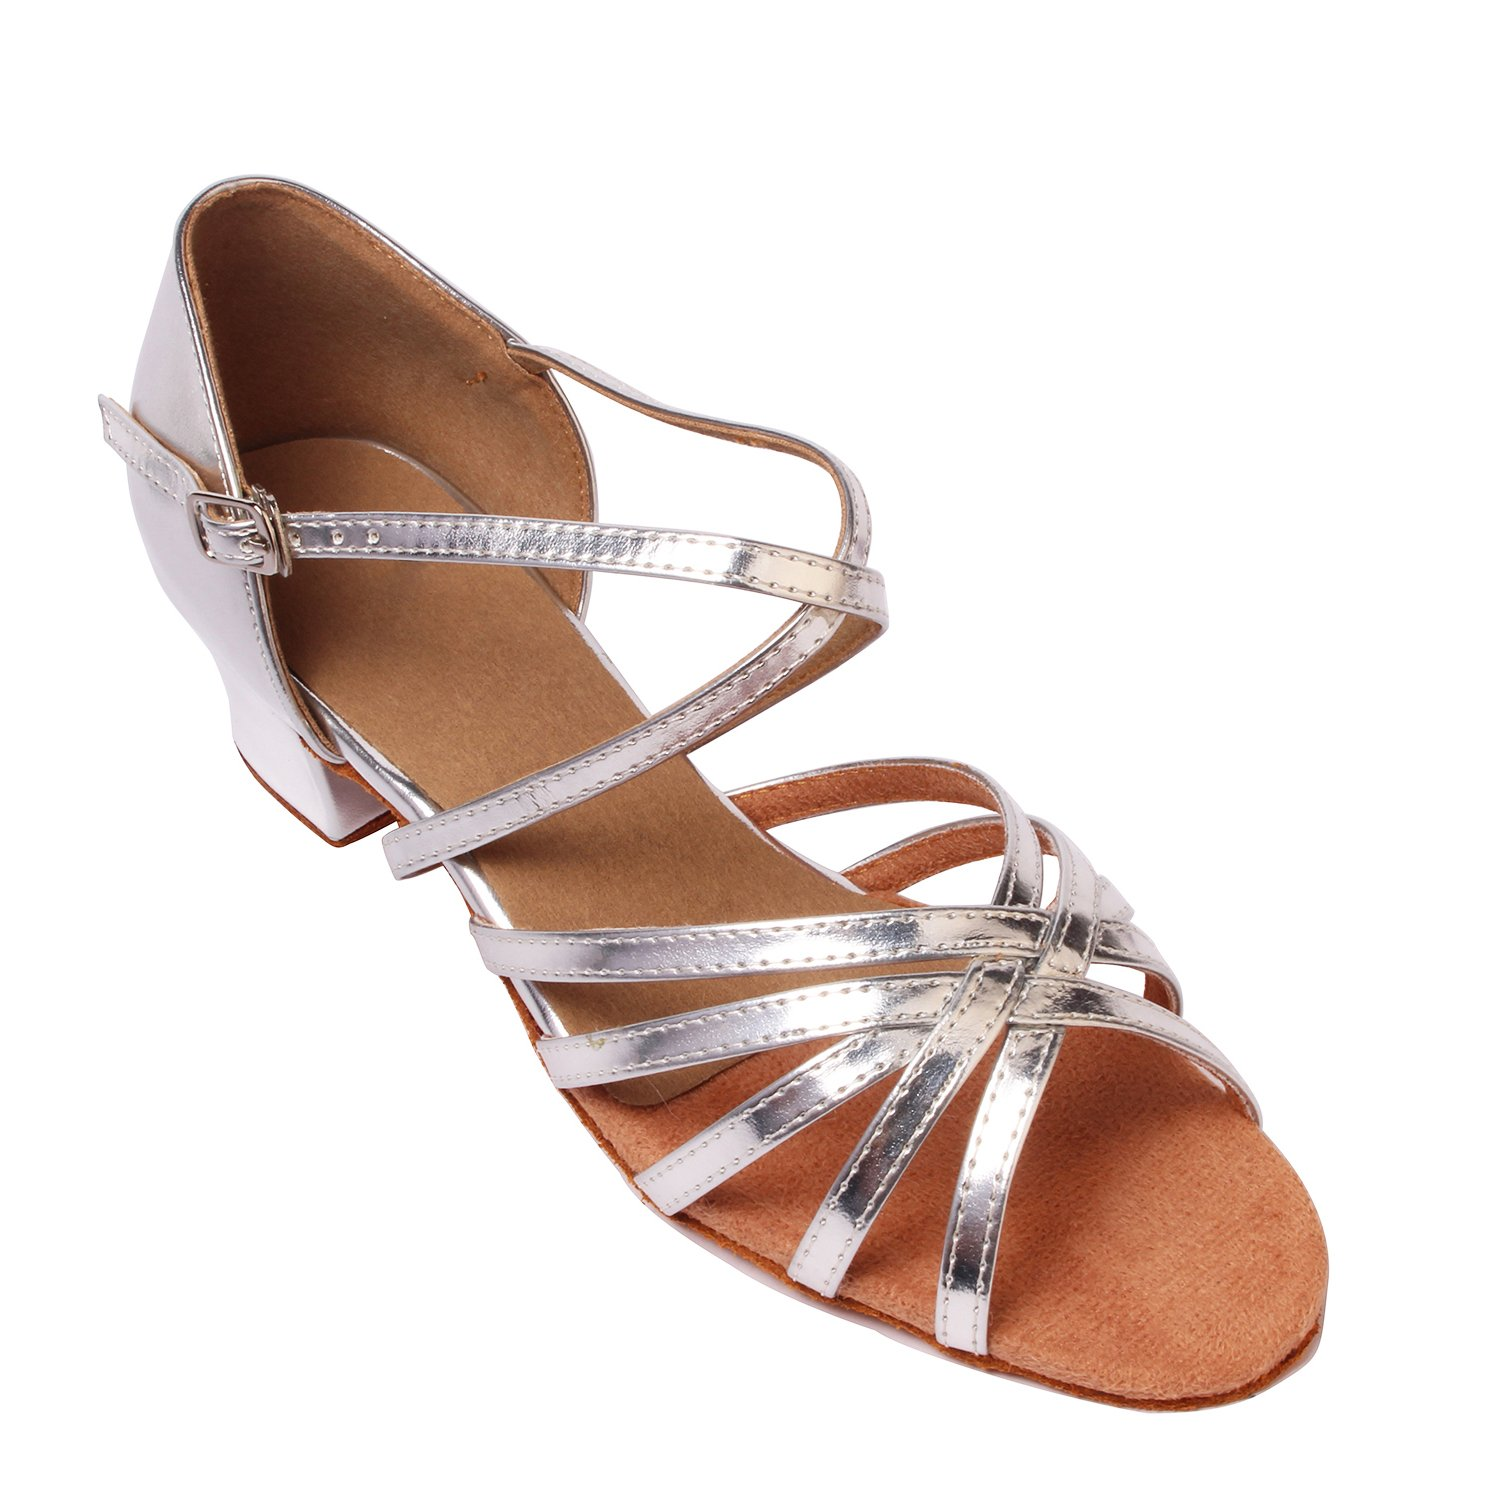 LOVELY BEAUTY Lady's Ballroom Dance Shoes for Chacha Latin Salsa Rumba Practice B0777QLQ4Z 7 B(M) US|Silver